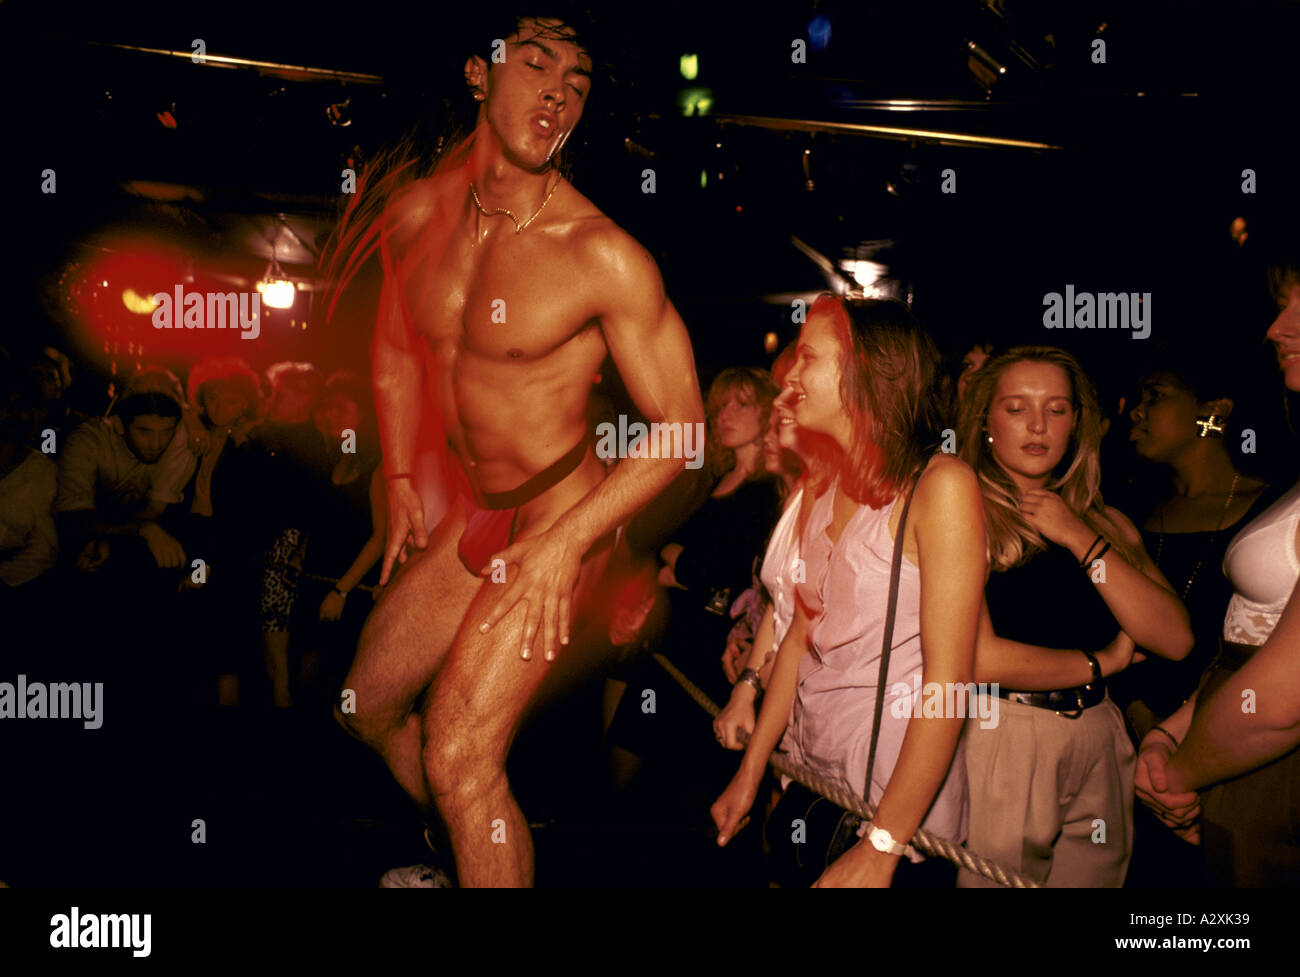 Fuckin erotic dance club love